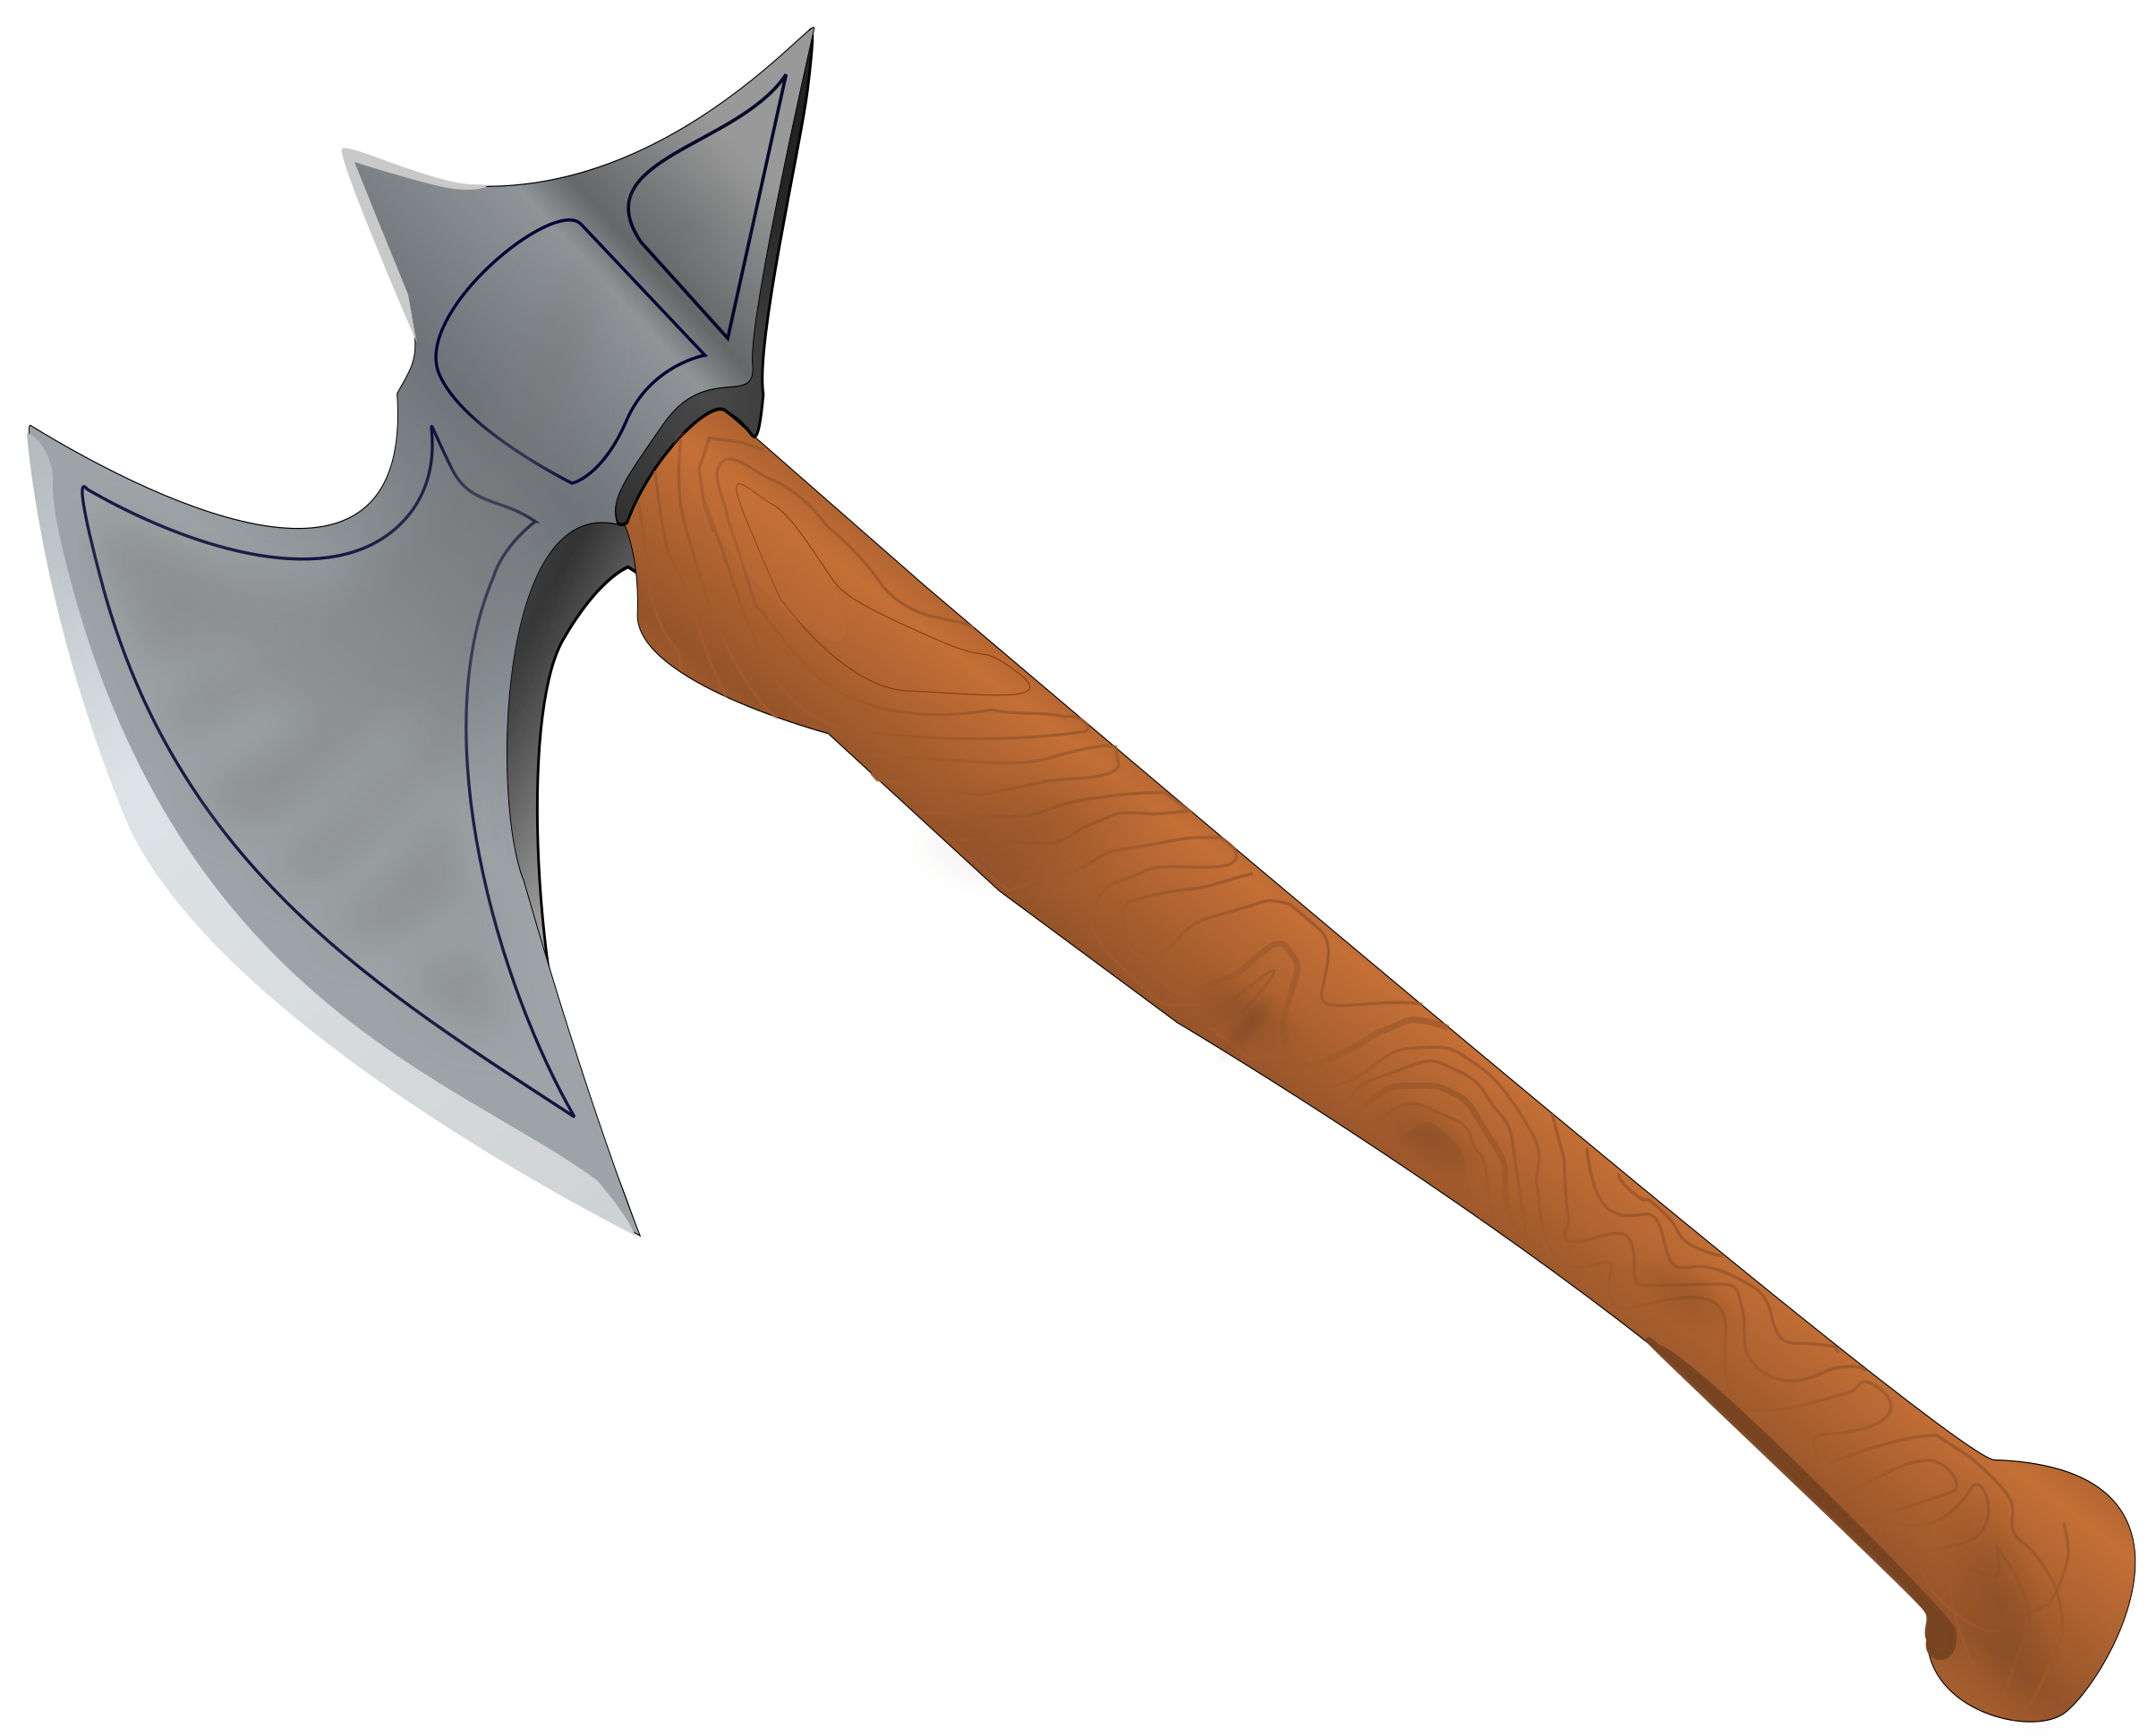 Medieval clipart hut. Top battle axe drawing